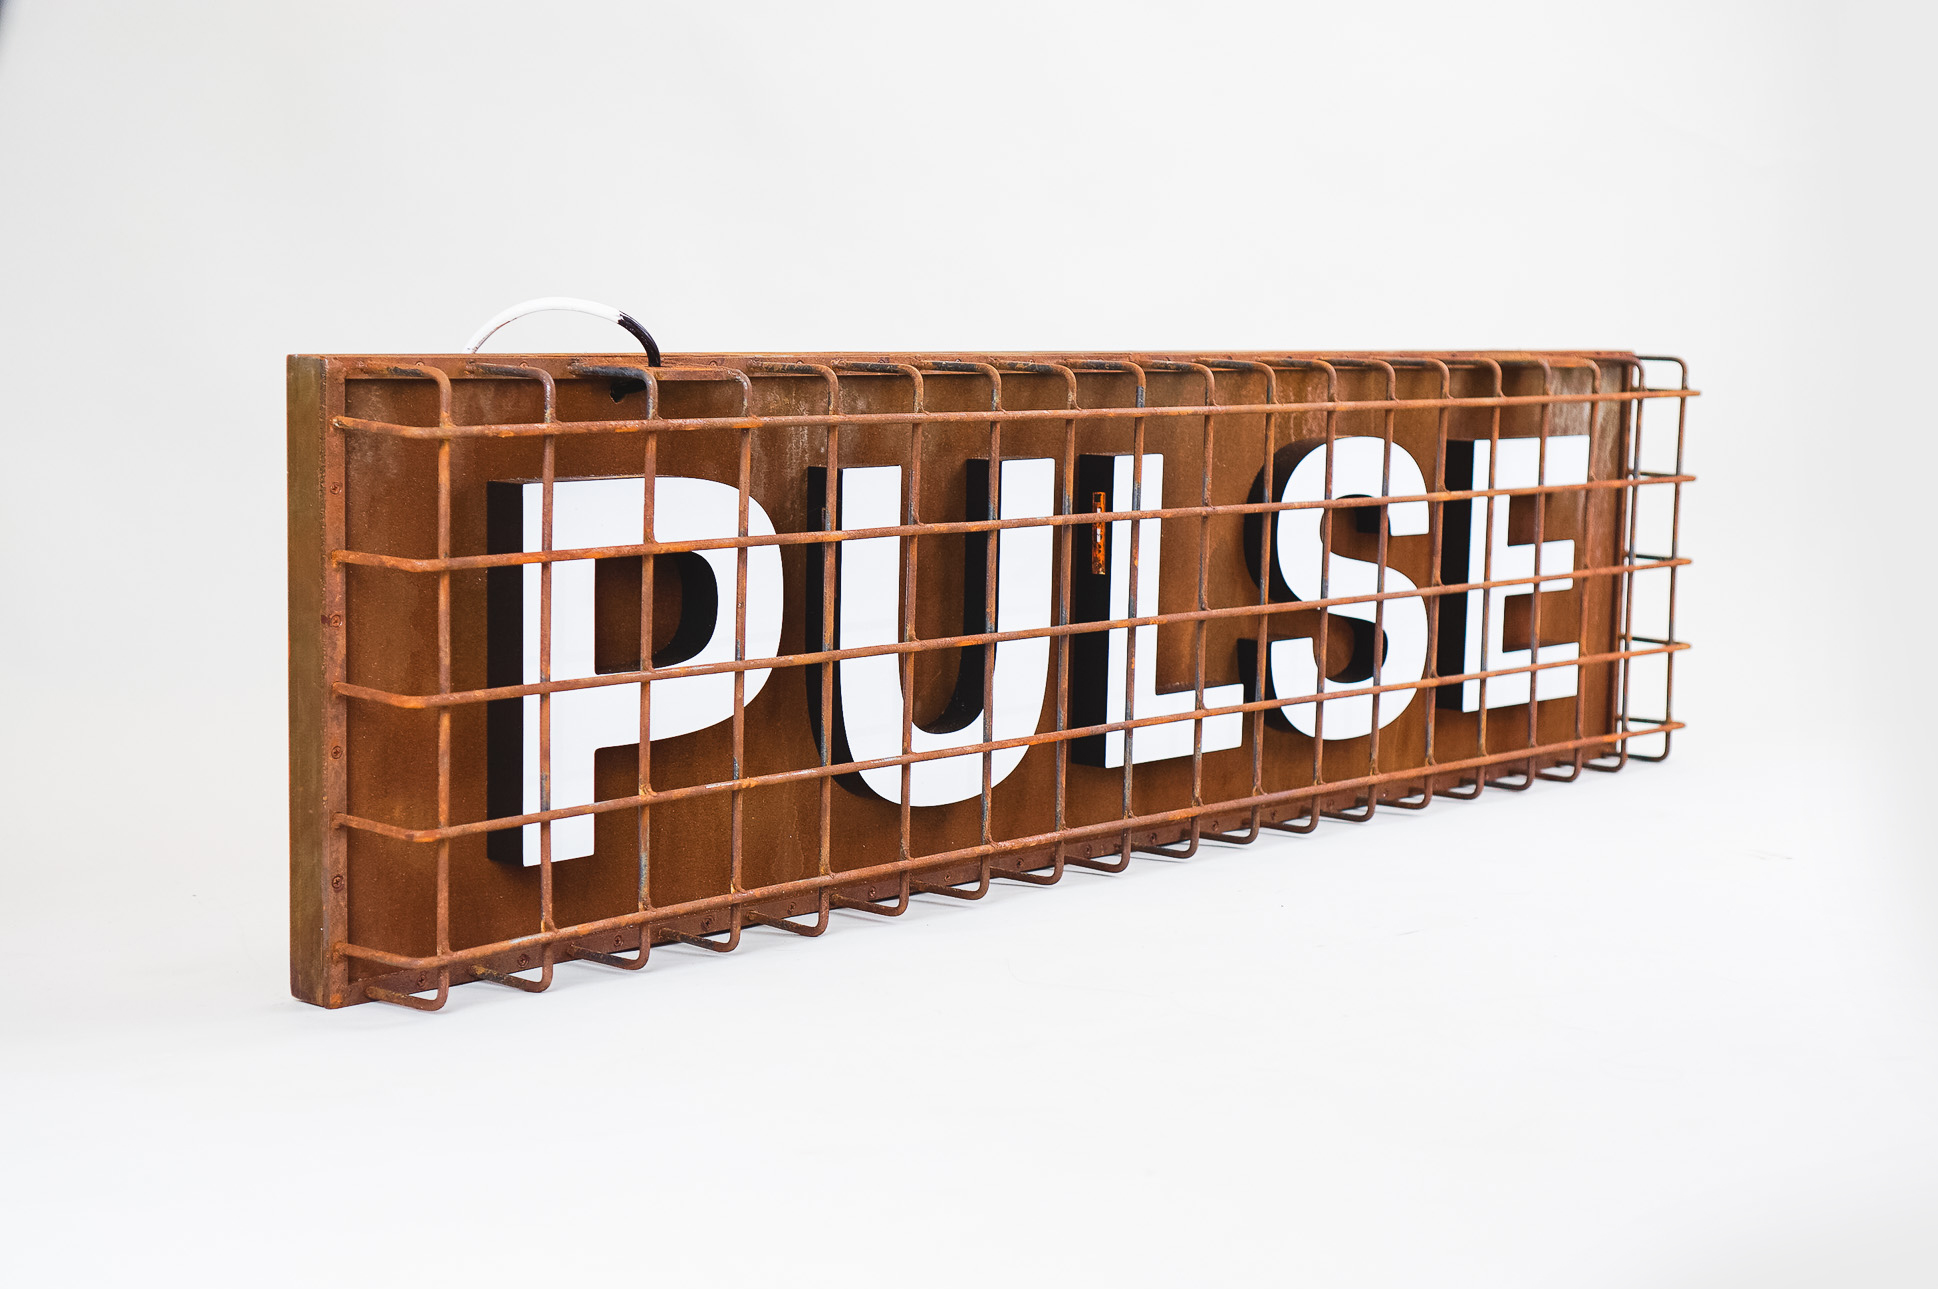 Industrial, caged, rusty metal illuminated sign for Pulse, a fitness studio at Newtown Athletic Club, a premiere family fitness and wellness center serving residents of Newtown, PA